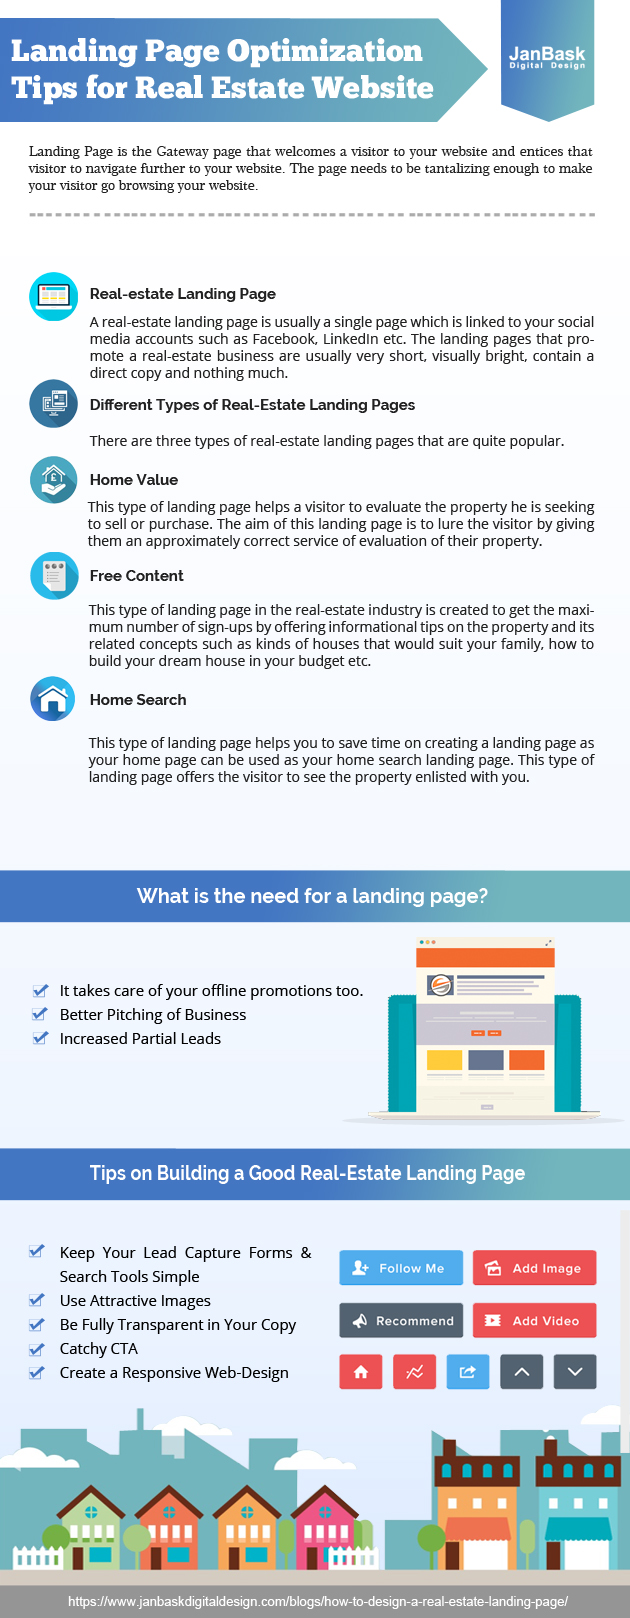 Infographic Landing Page Optimization Tips for Real-estate website